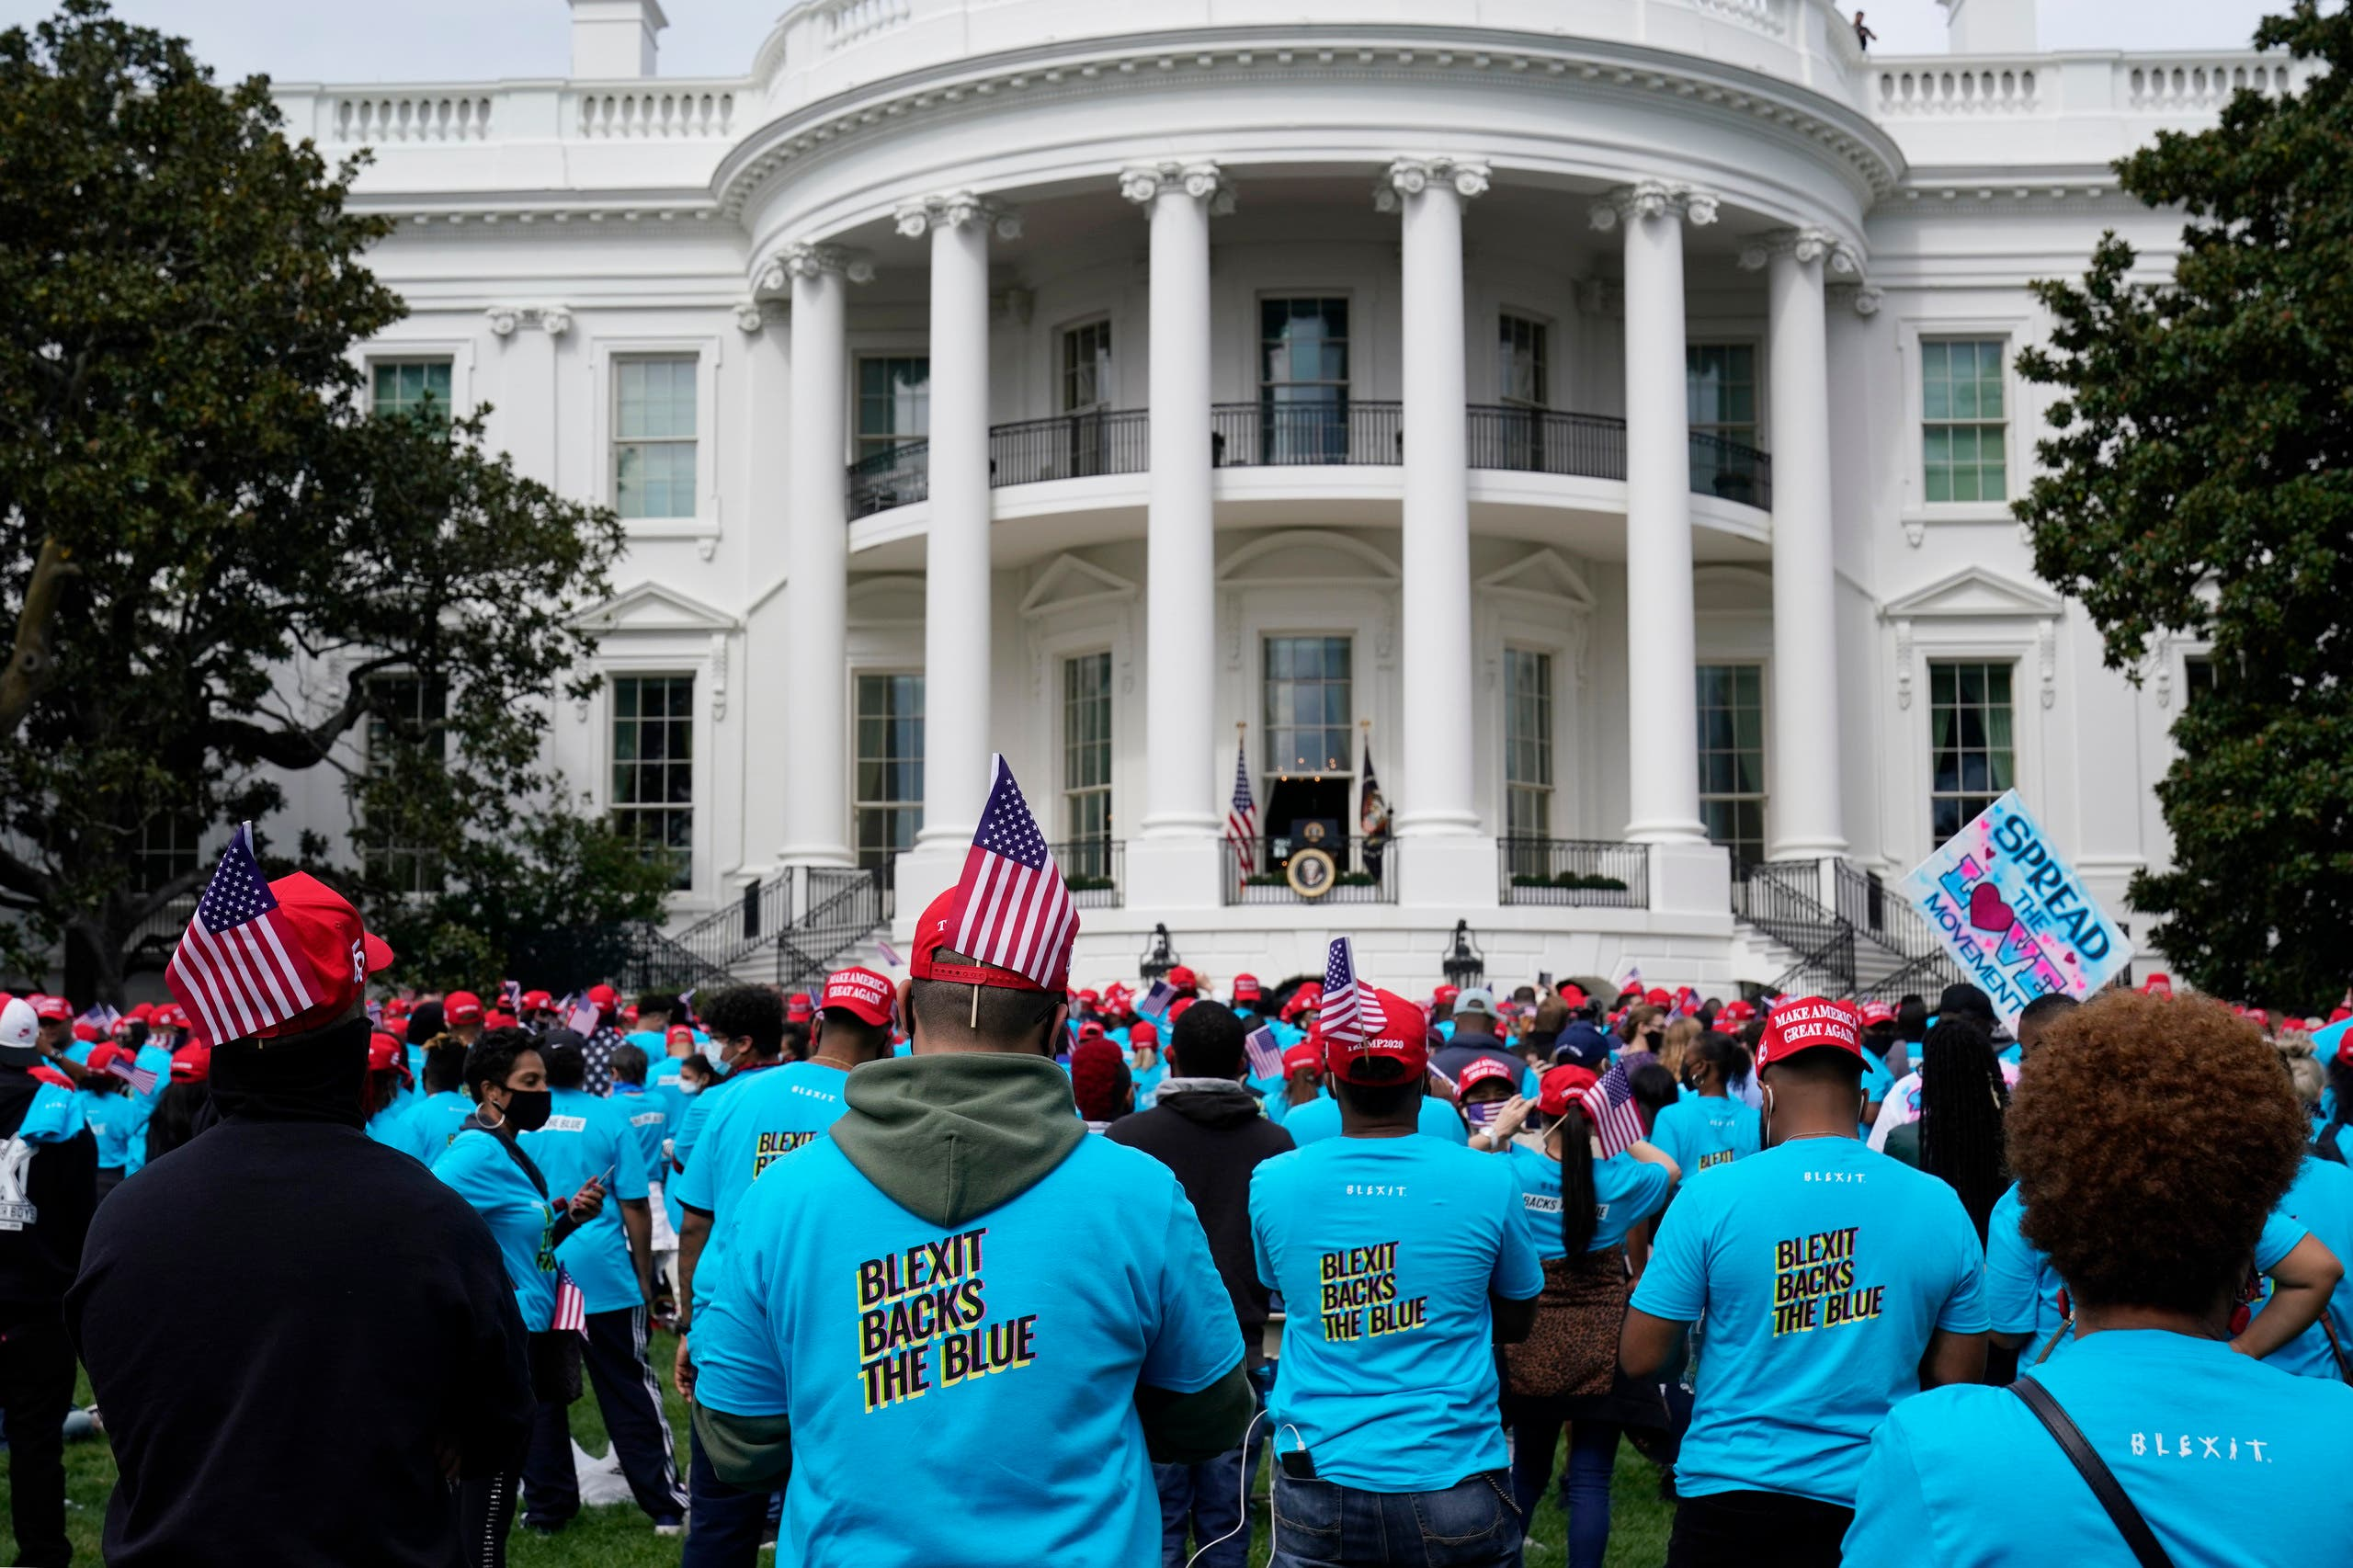 Supporters of President Donald Trump rally at The Ellipse, before entering to The White House, where Trump will hold an event on the South lawn on Saturday, Oct. 10, 2020, in Washington. (AP)